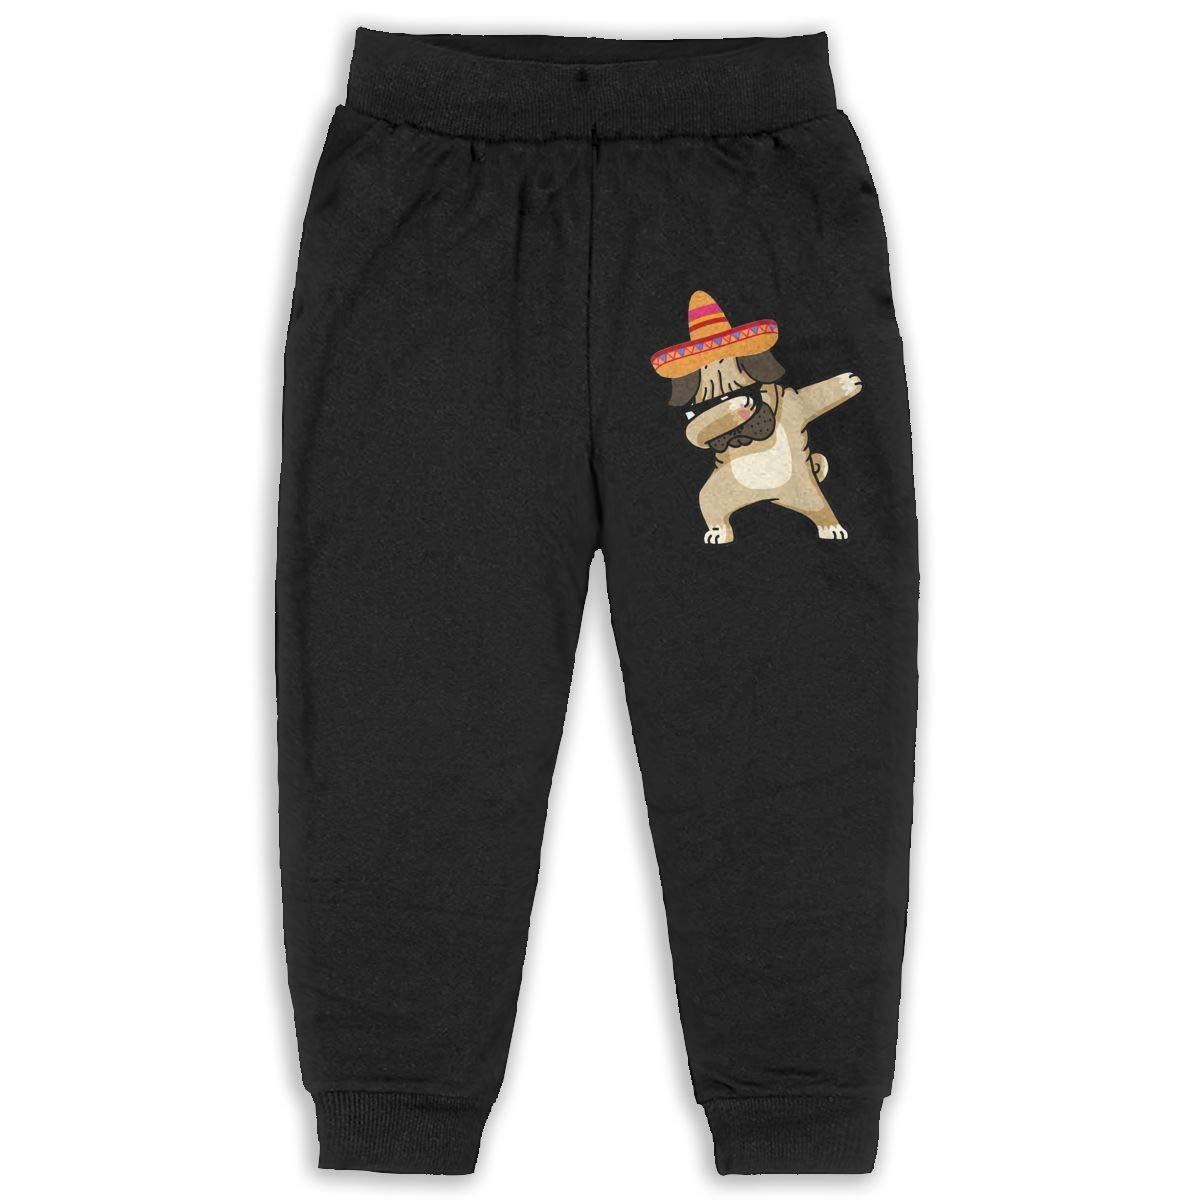 Roli-Land Unisex Boys Dabbing Pug Fashion Daily Sweatpants Black Gift with Pockets Pajamas